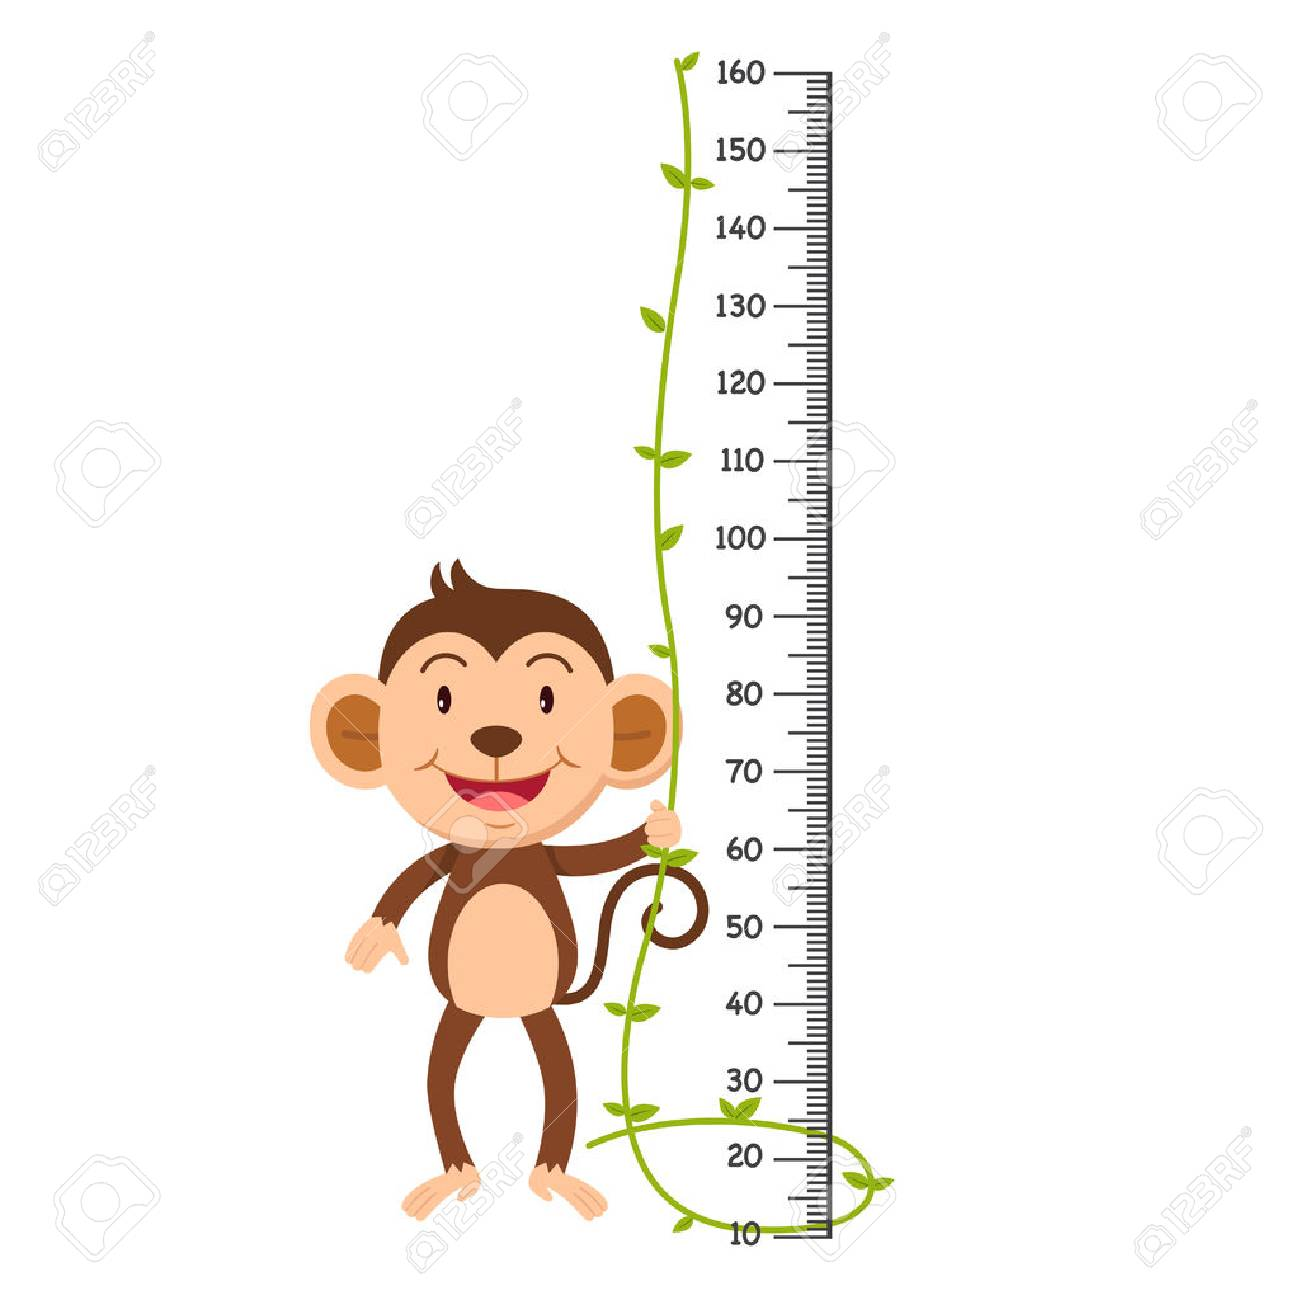 Meter wall with monkey. Vector illustration. - 83657454